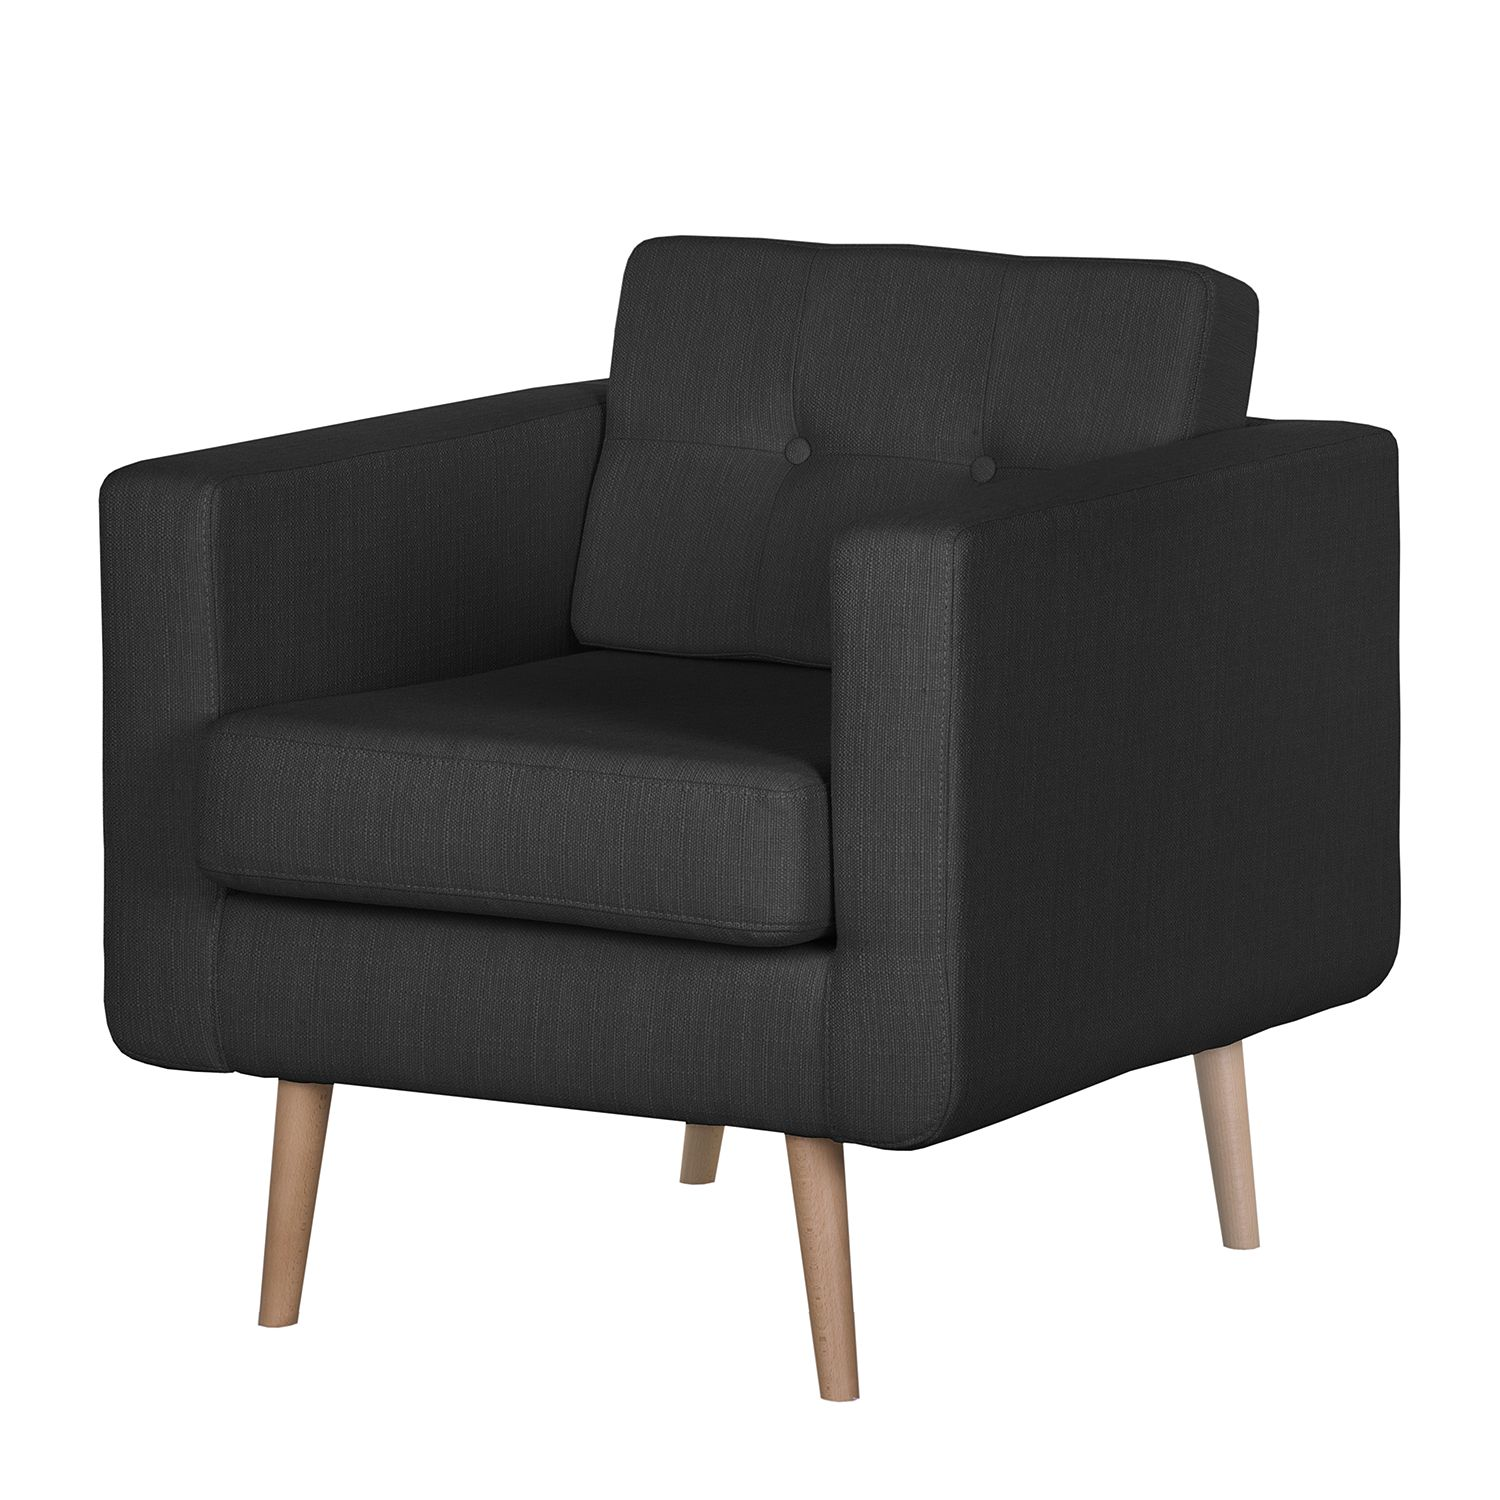 goedkoop Fauteuil Croom V geweven stof Zonder hocker Antraciet Morteens